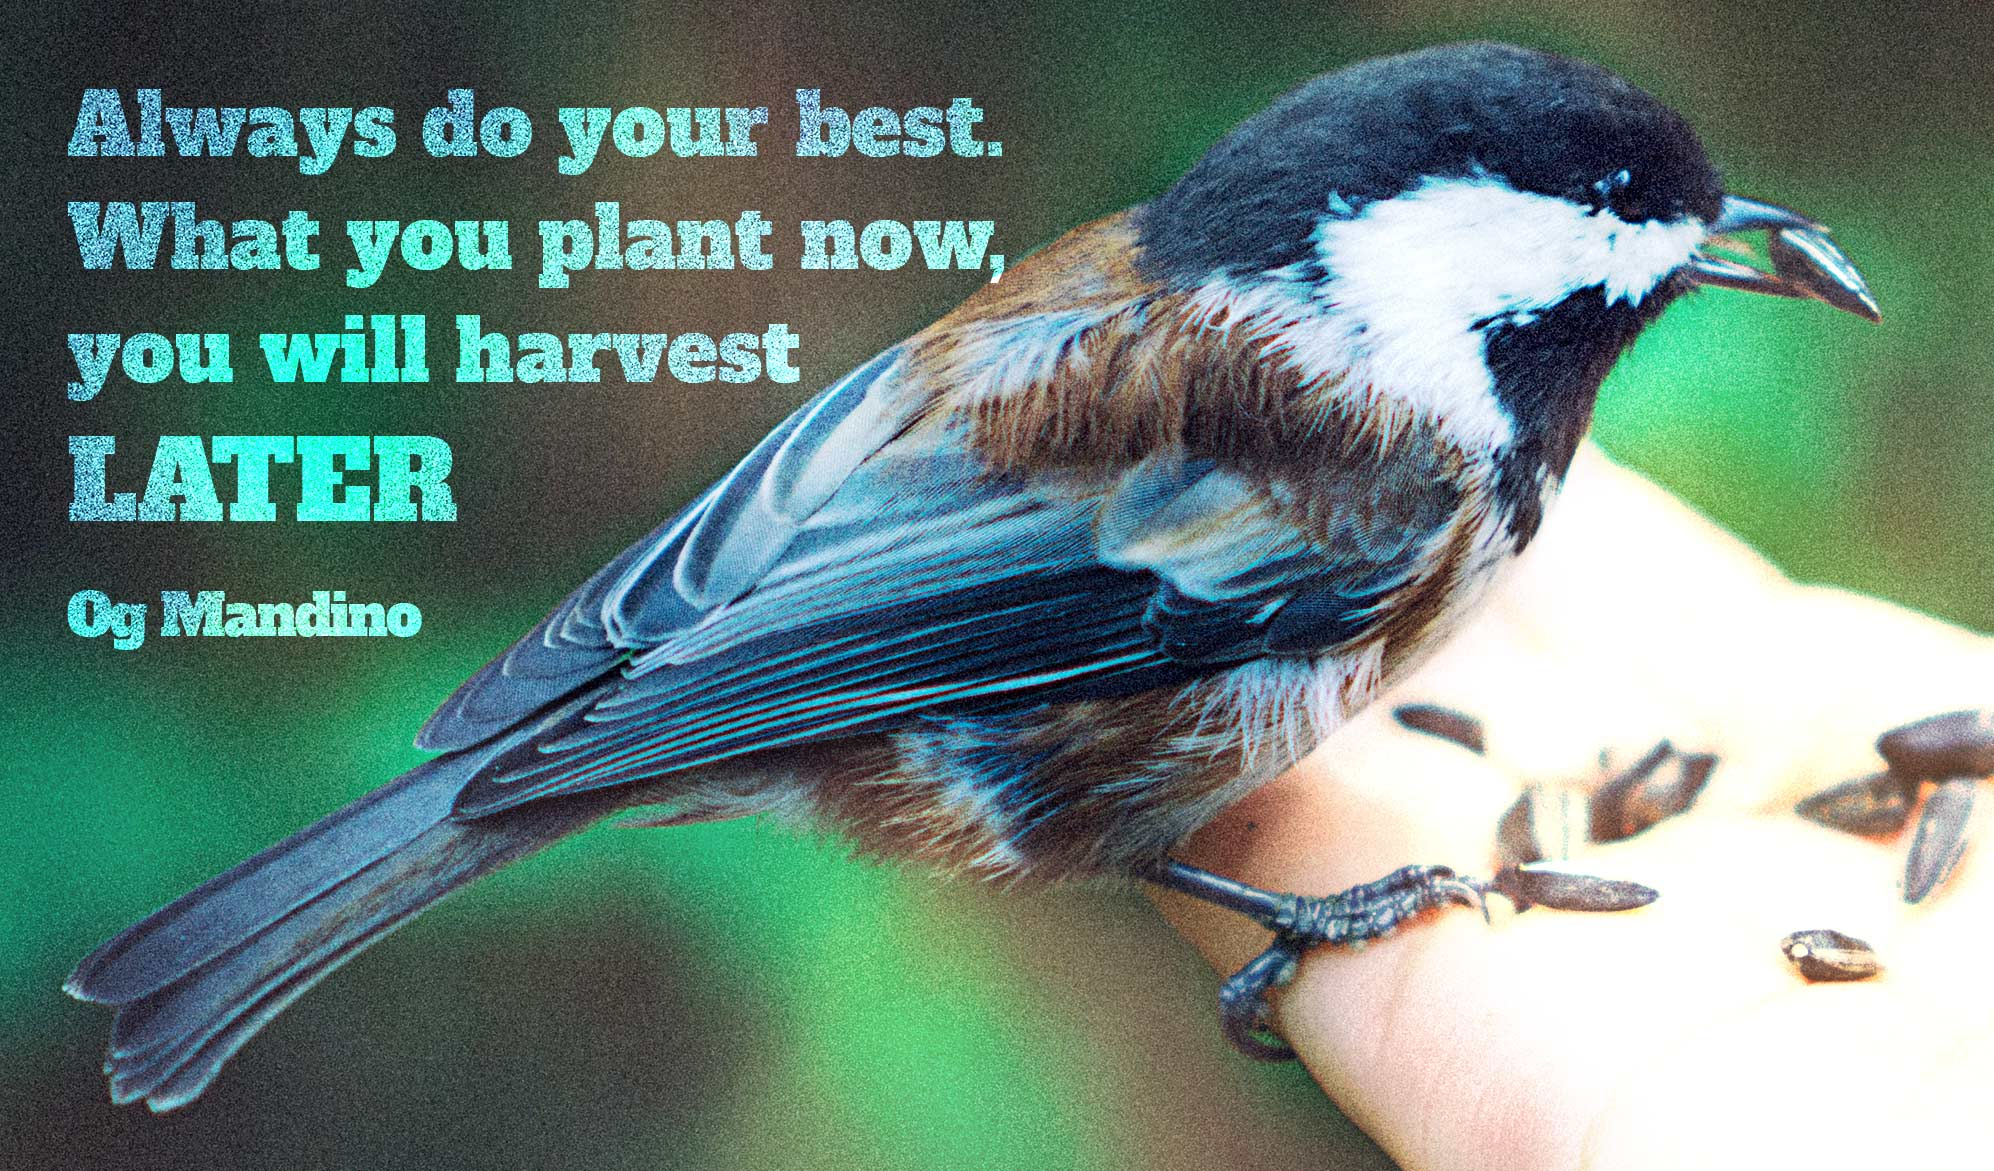 daily inspirational quote image:a black and white bird pecking seeds from an open hand